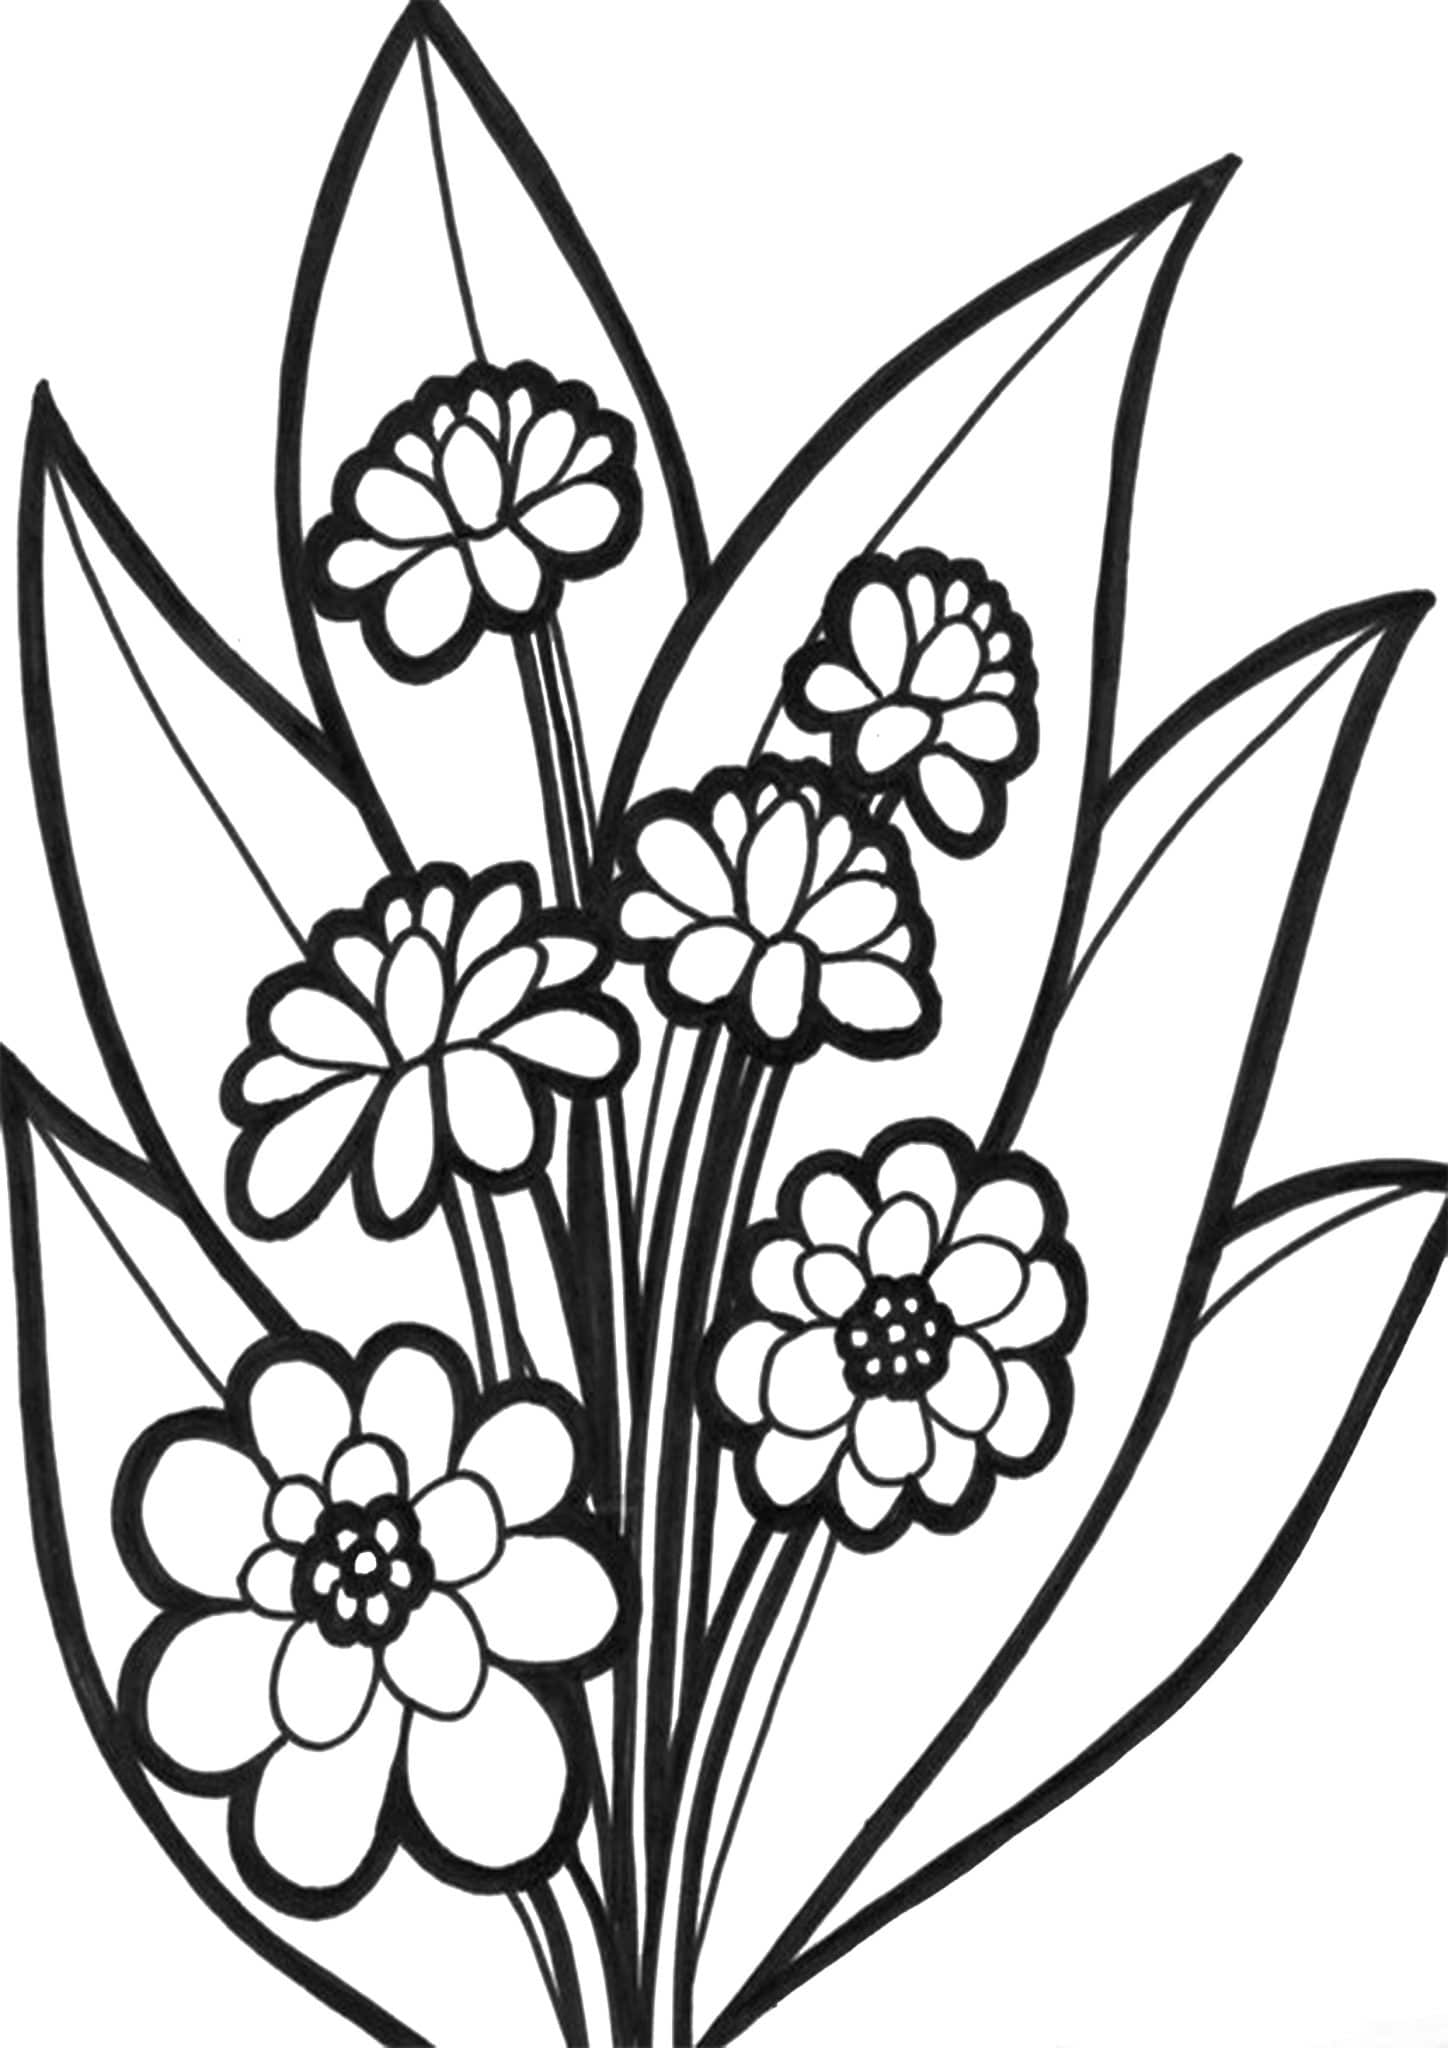 flower printable coloring sheets detailed flower coloring pages to download and print for free sheets flower coloring printable